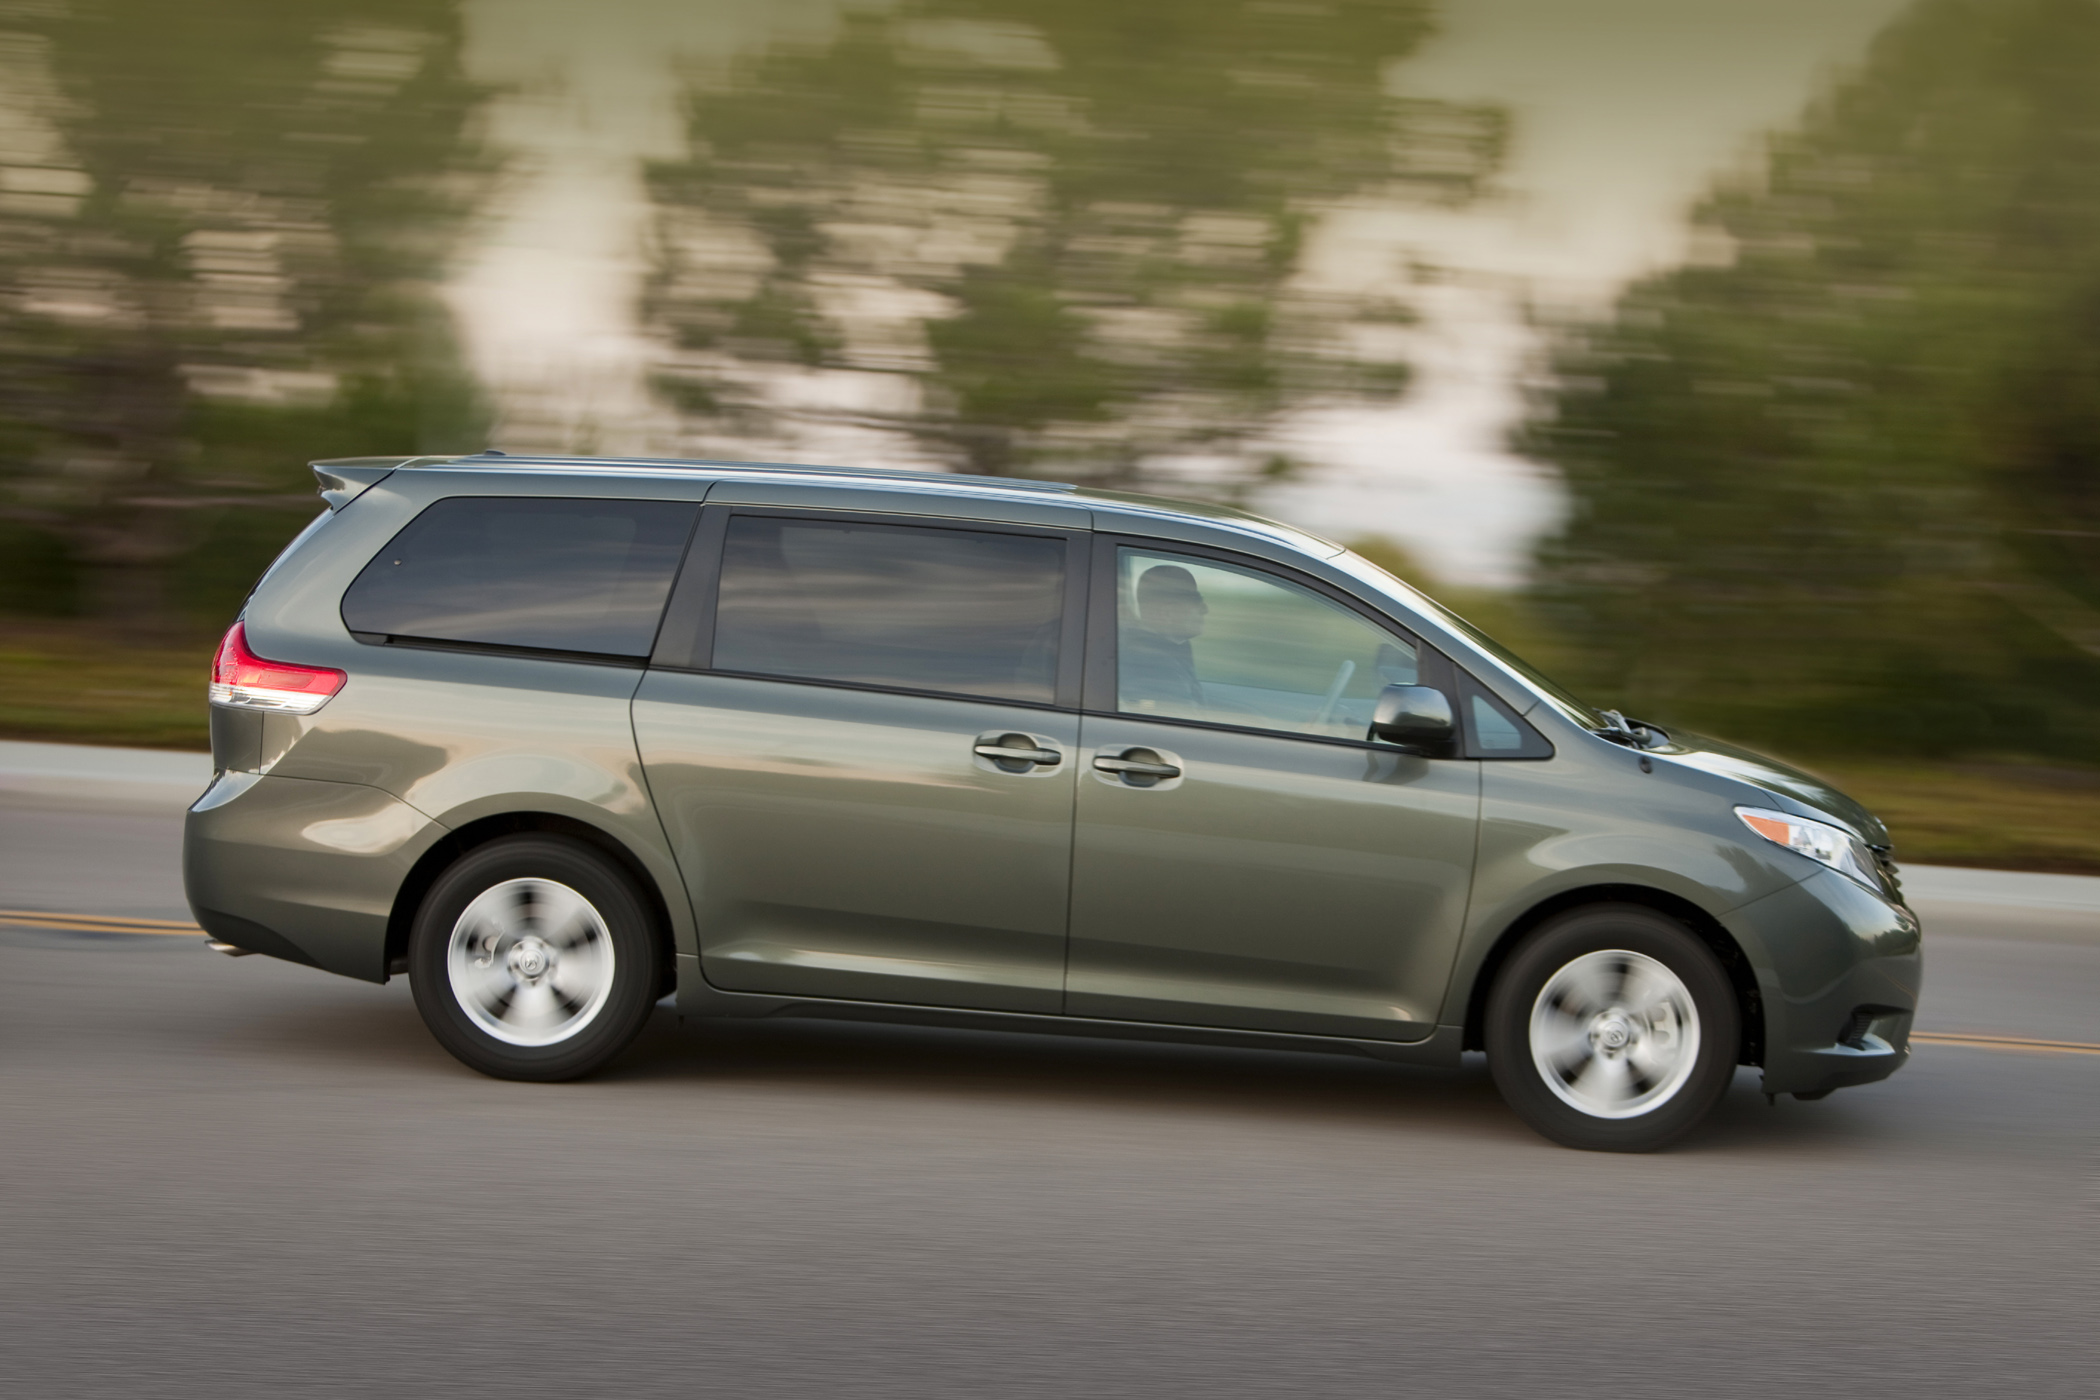 With A Starting Price Of $24,460, The 2011 Sienna Lineup Offers Many  Options To A Variety Of Minivan Buyers, As Proven By Toyotau0027s Pricing  Strategy That Can ...